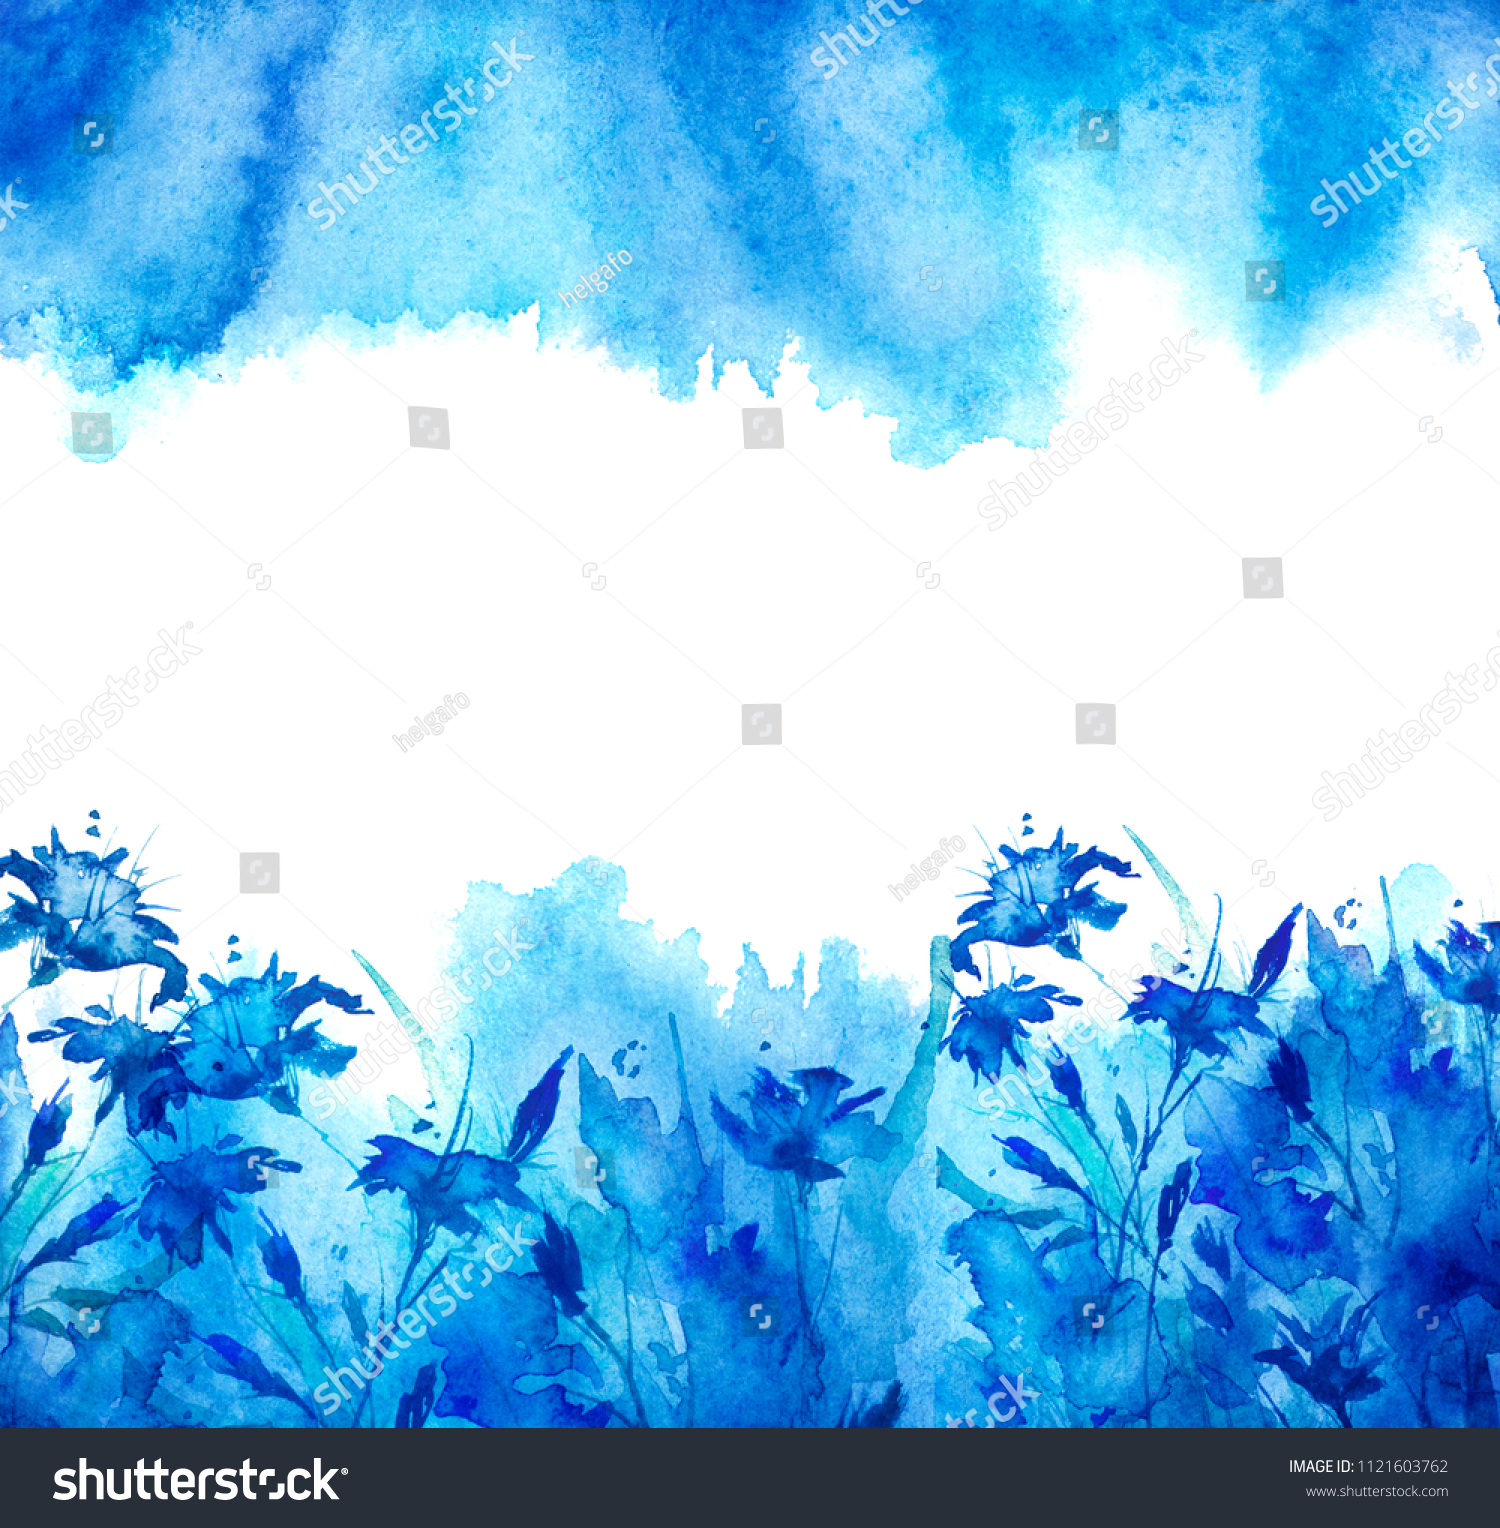 Watercolor bouquet blue flowers beautiful abstract stock watercolor bouquet of blue flowers beautiful abstract blue splash of paint cornflower blue izmirmasajfo